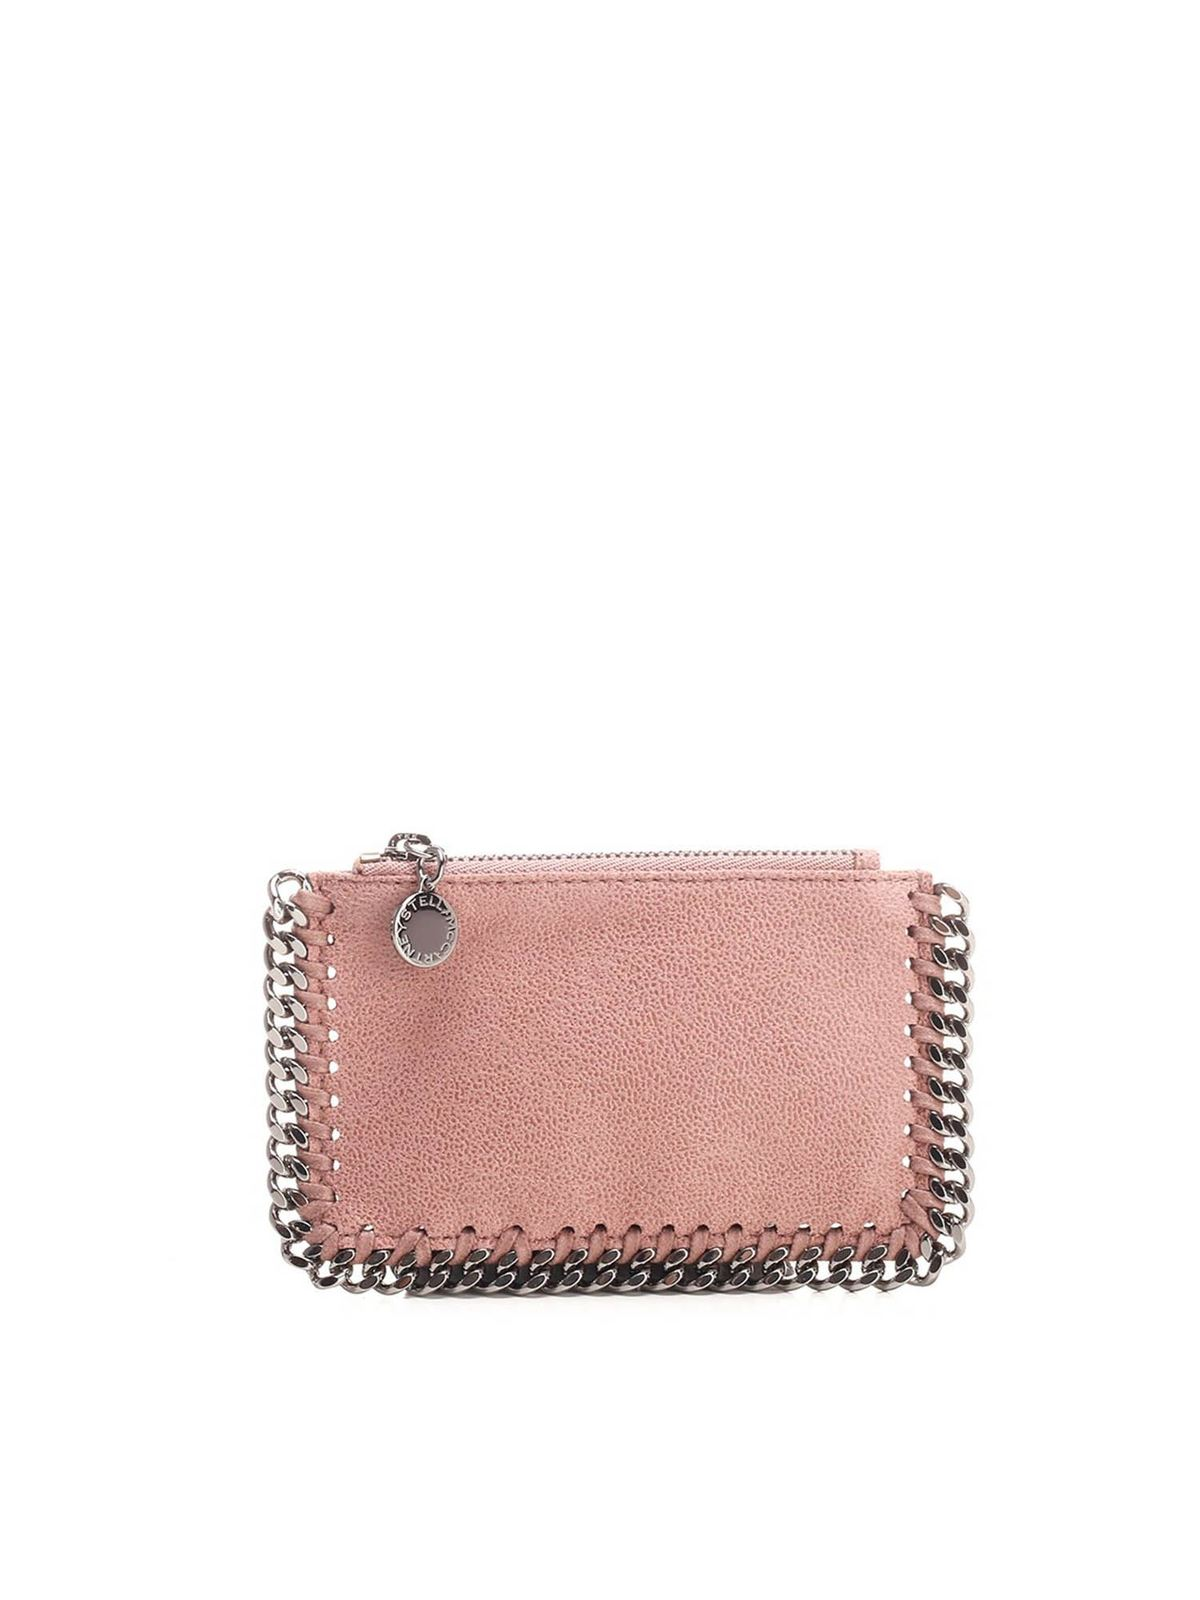 Stella Mccartney FALABELLA CARD HOLDERS IN PINK